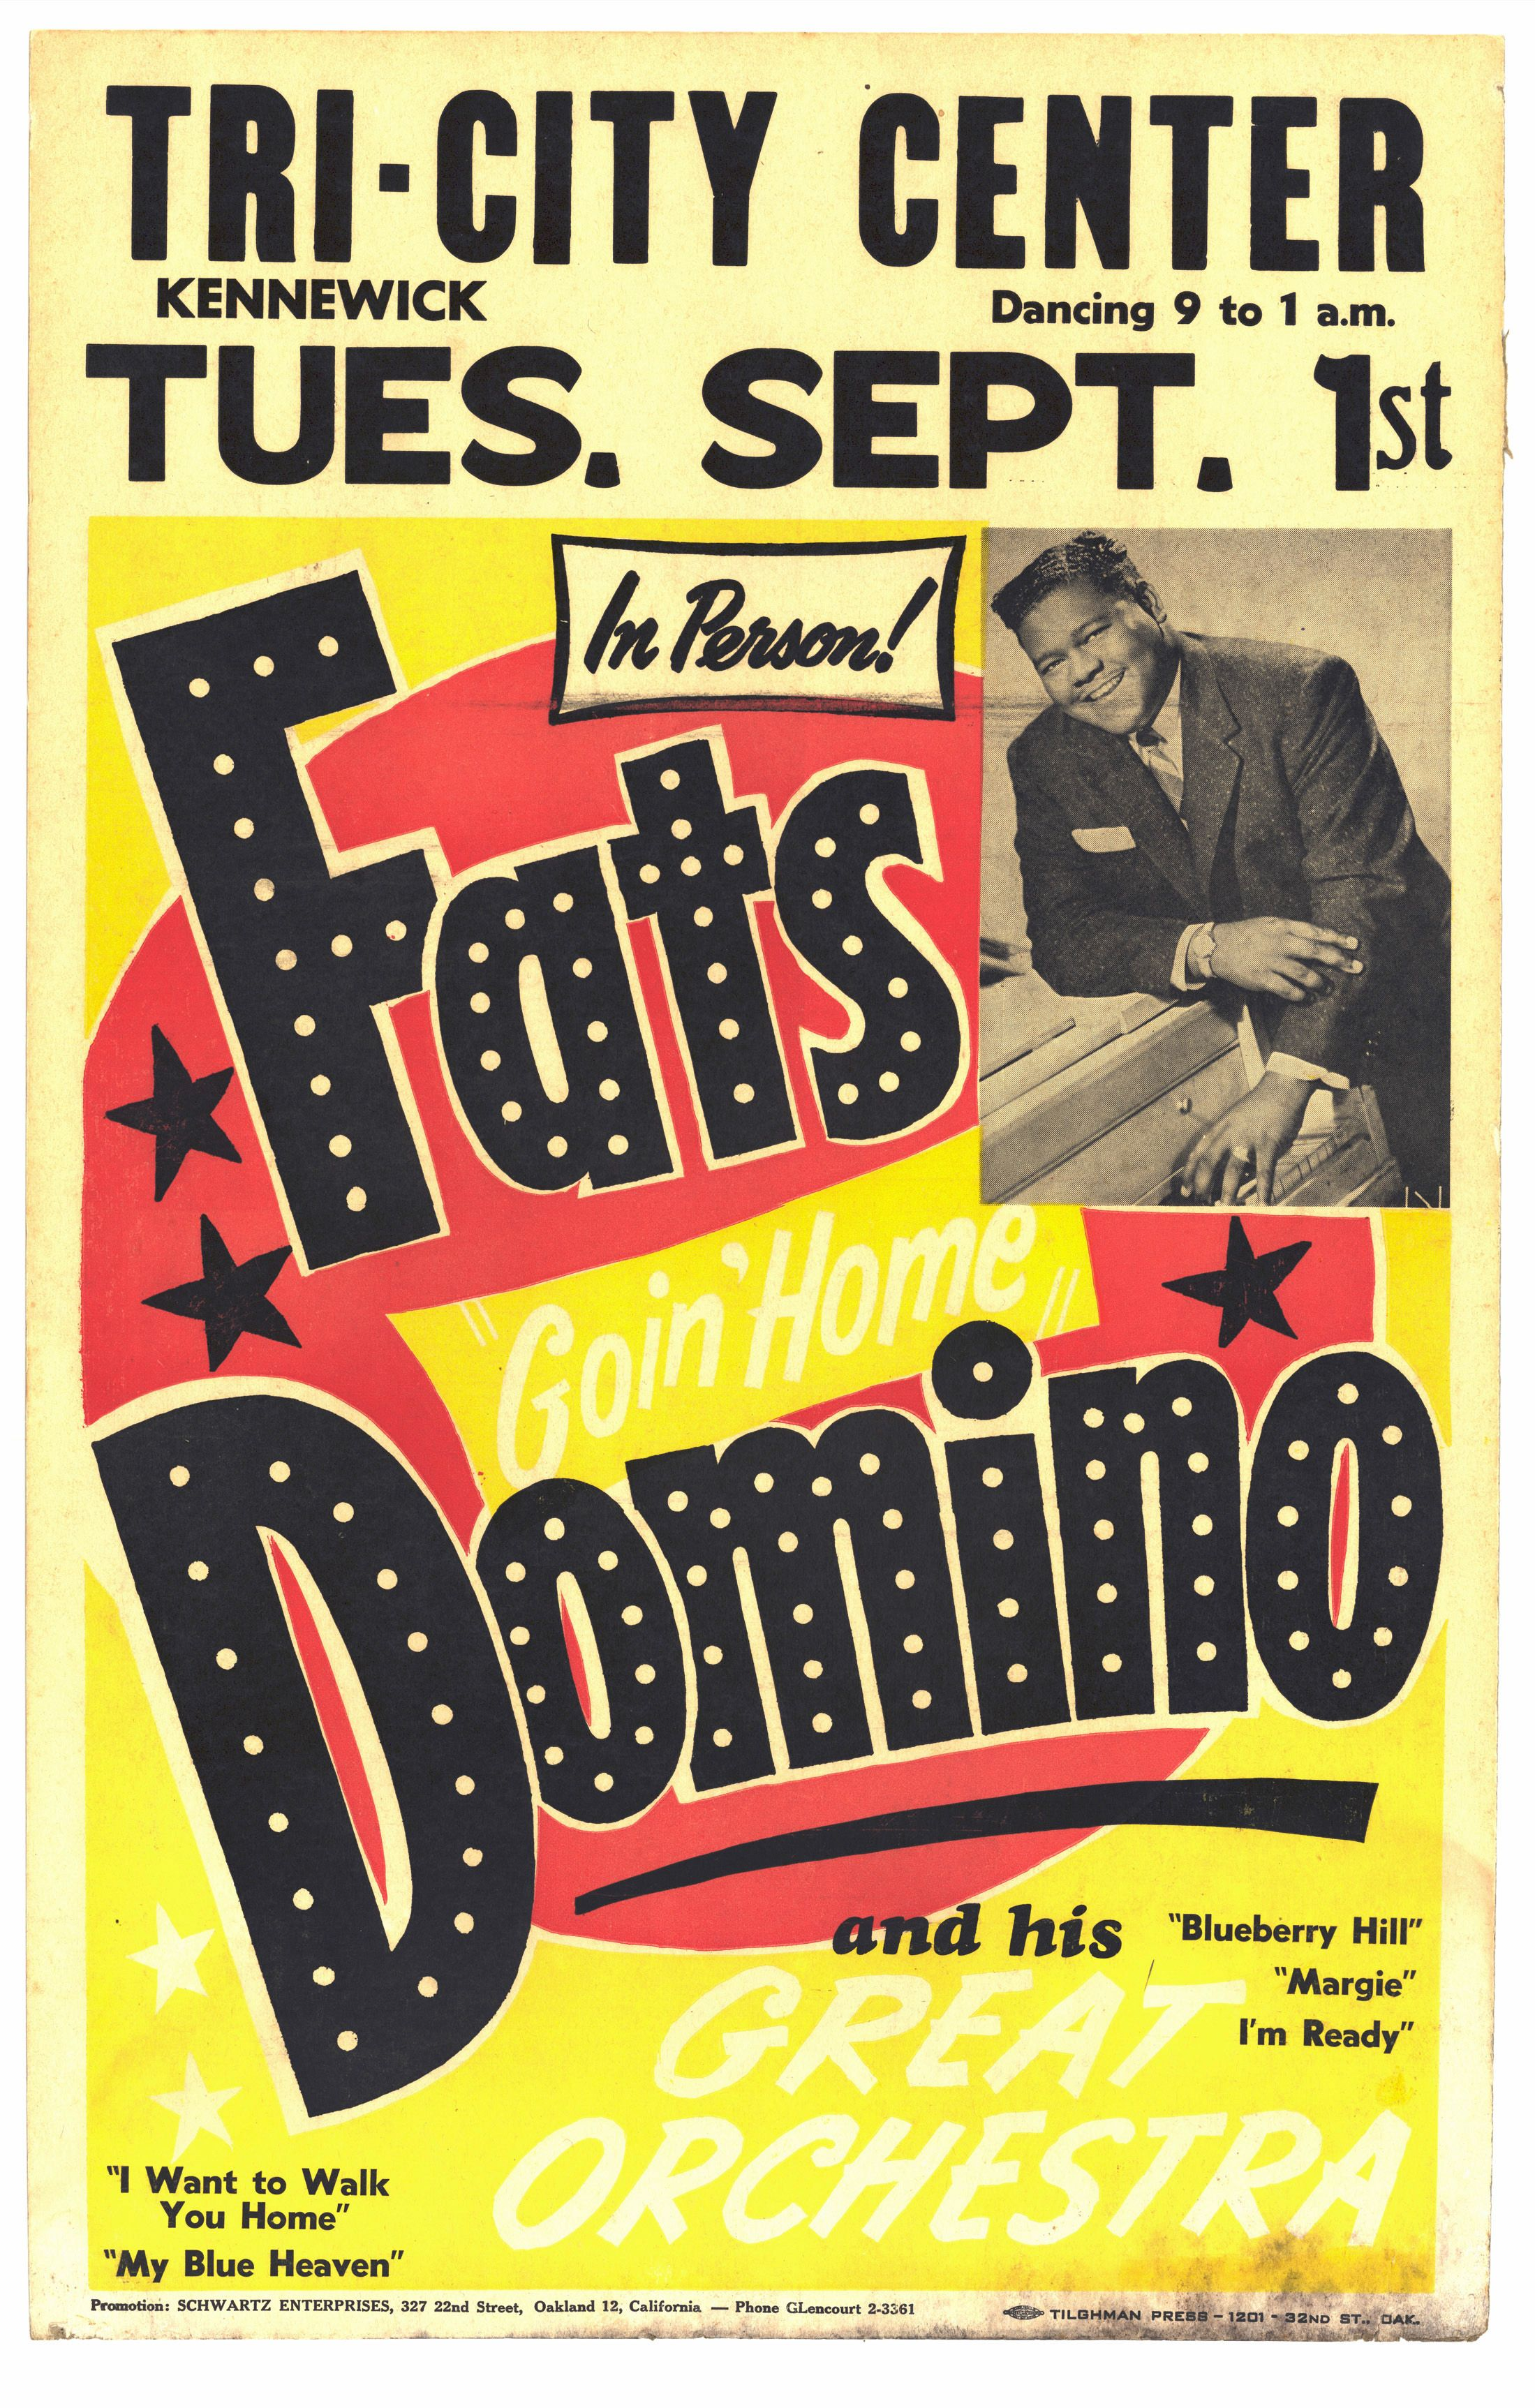 Vintage Rock And Roll Posters 44